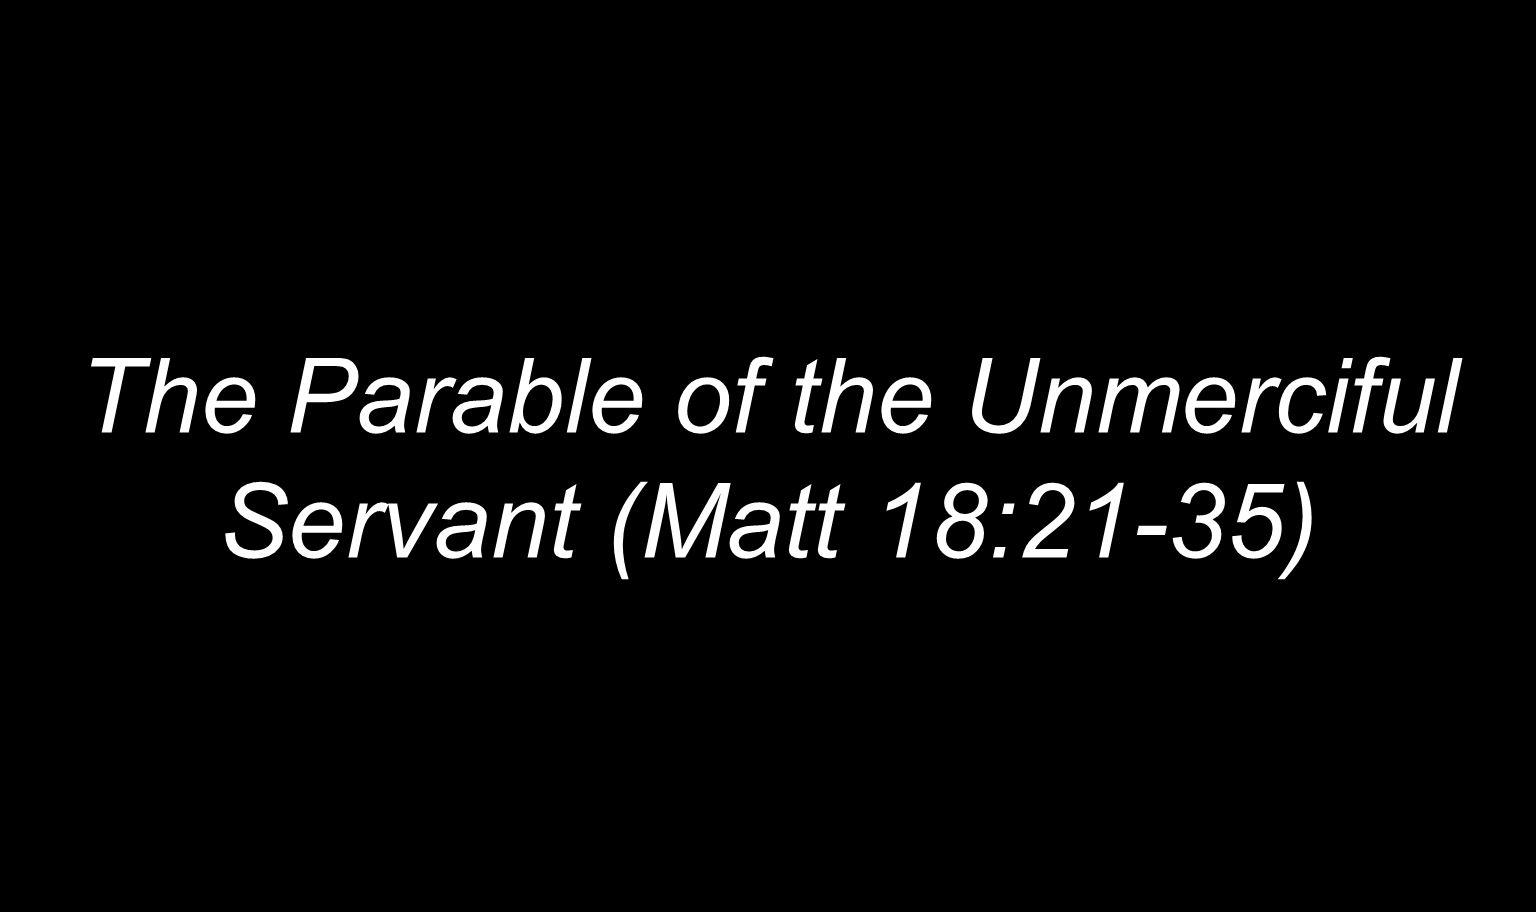 The Parable of the Unmerciful Servant (Matt 18:21-35)